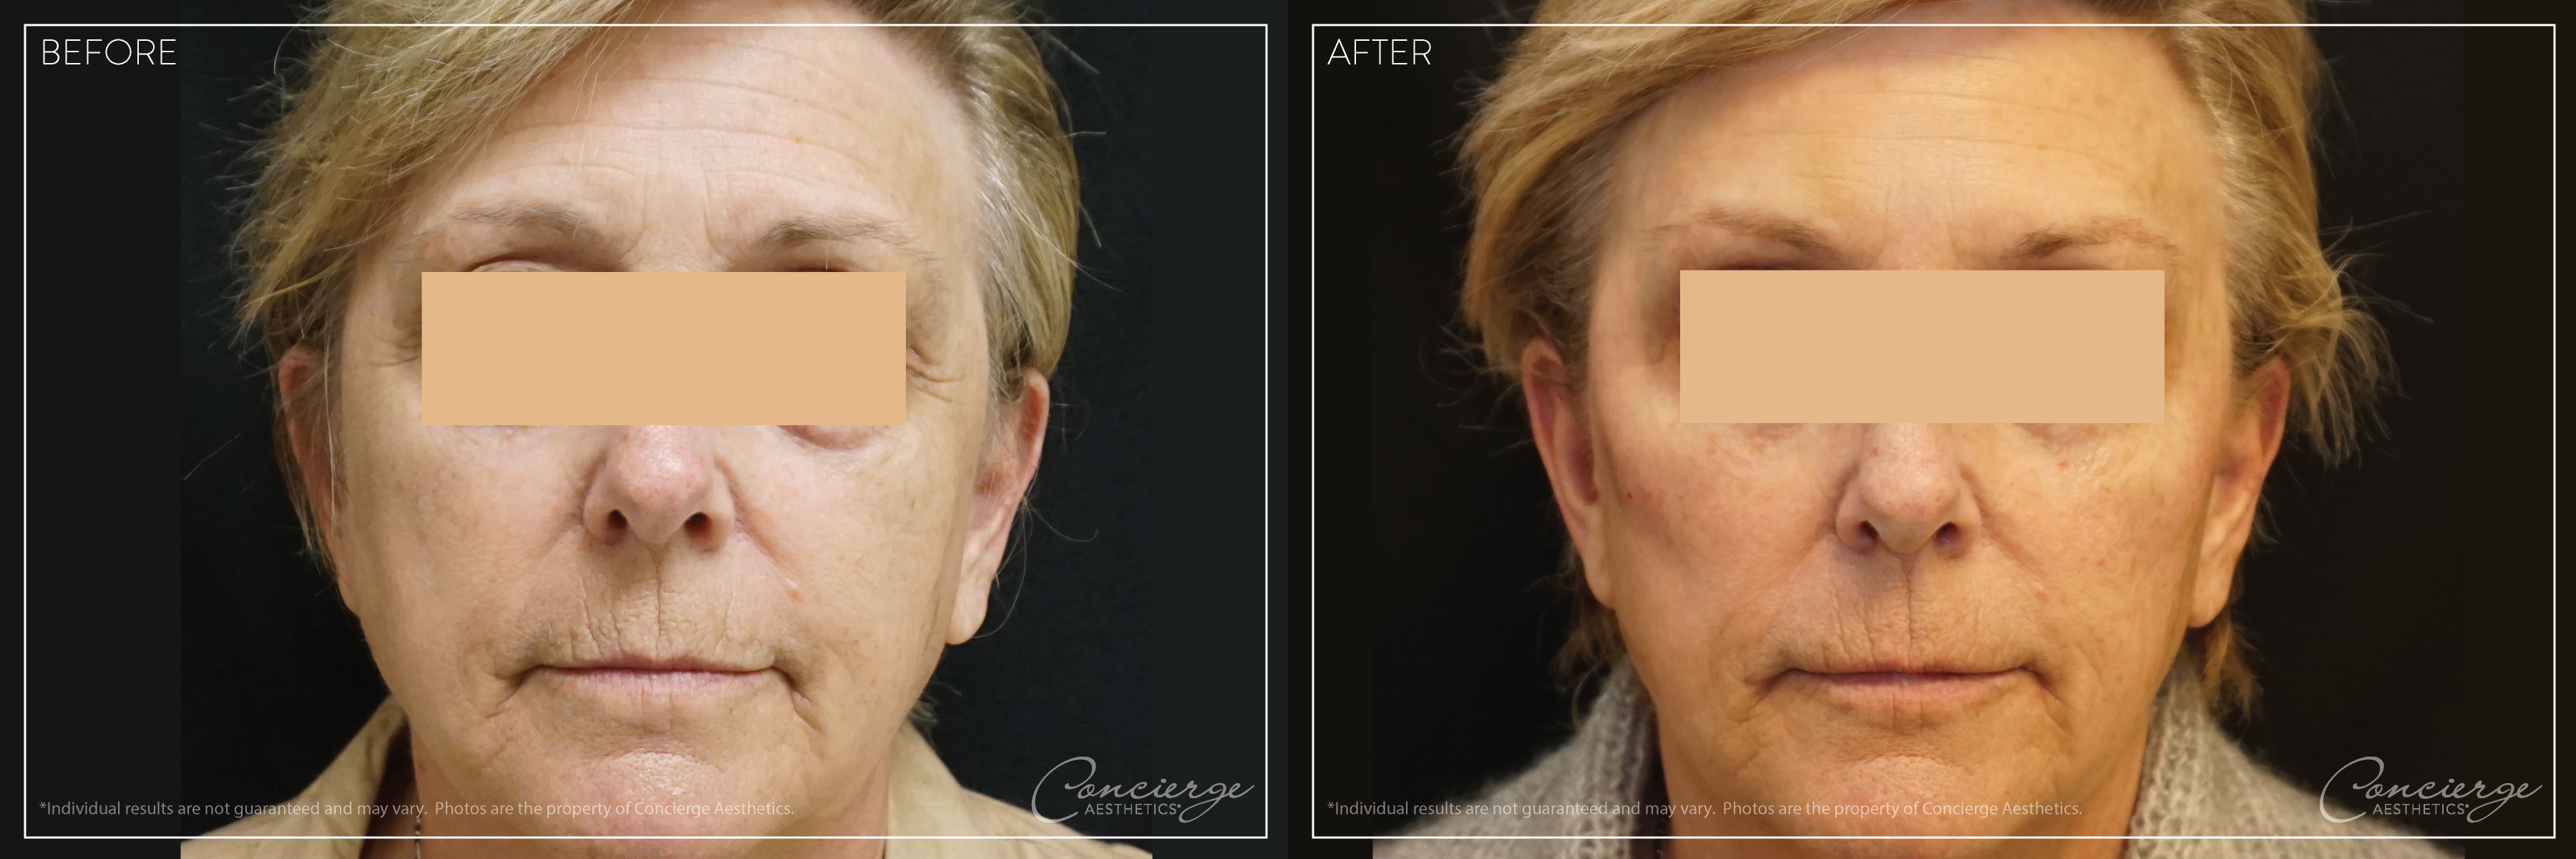 Before and After Photos - Juvederm Voluma and Botox Cosmetic